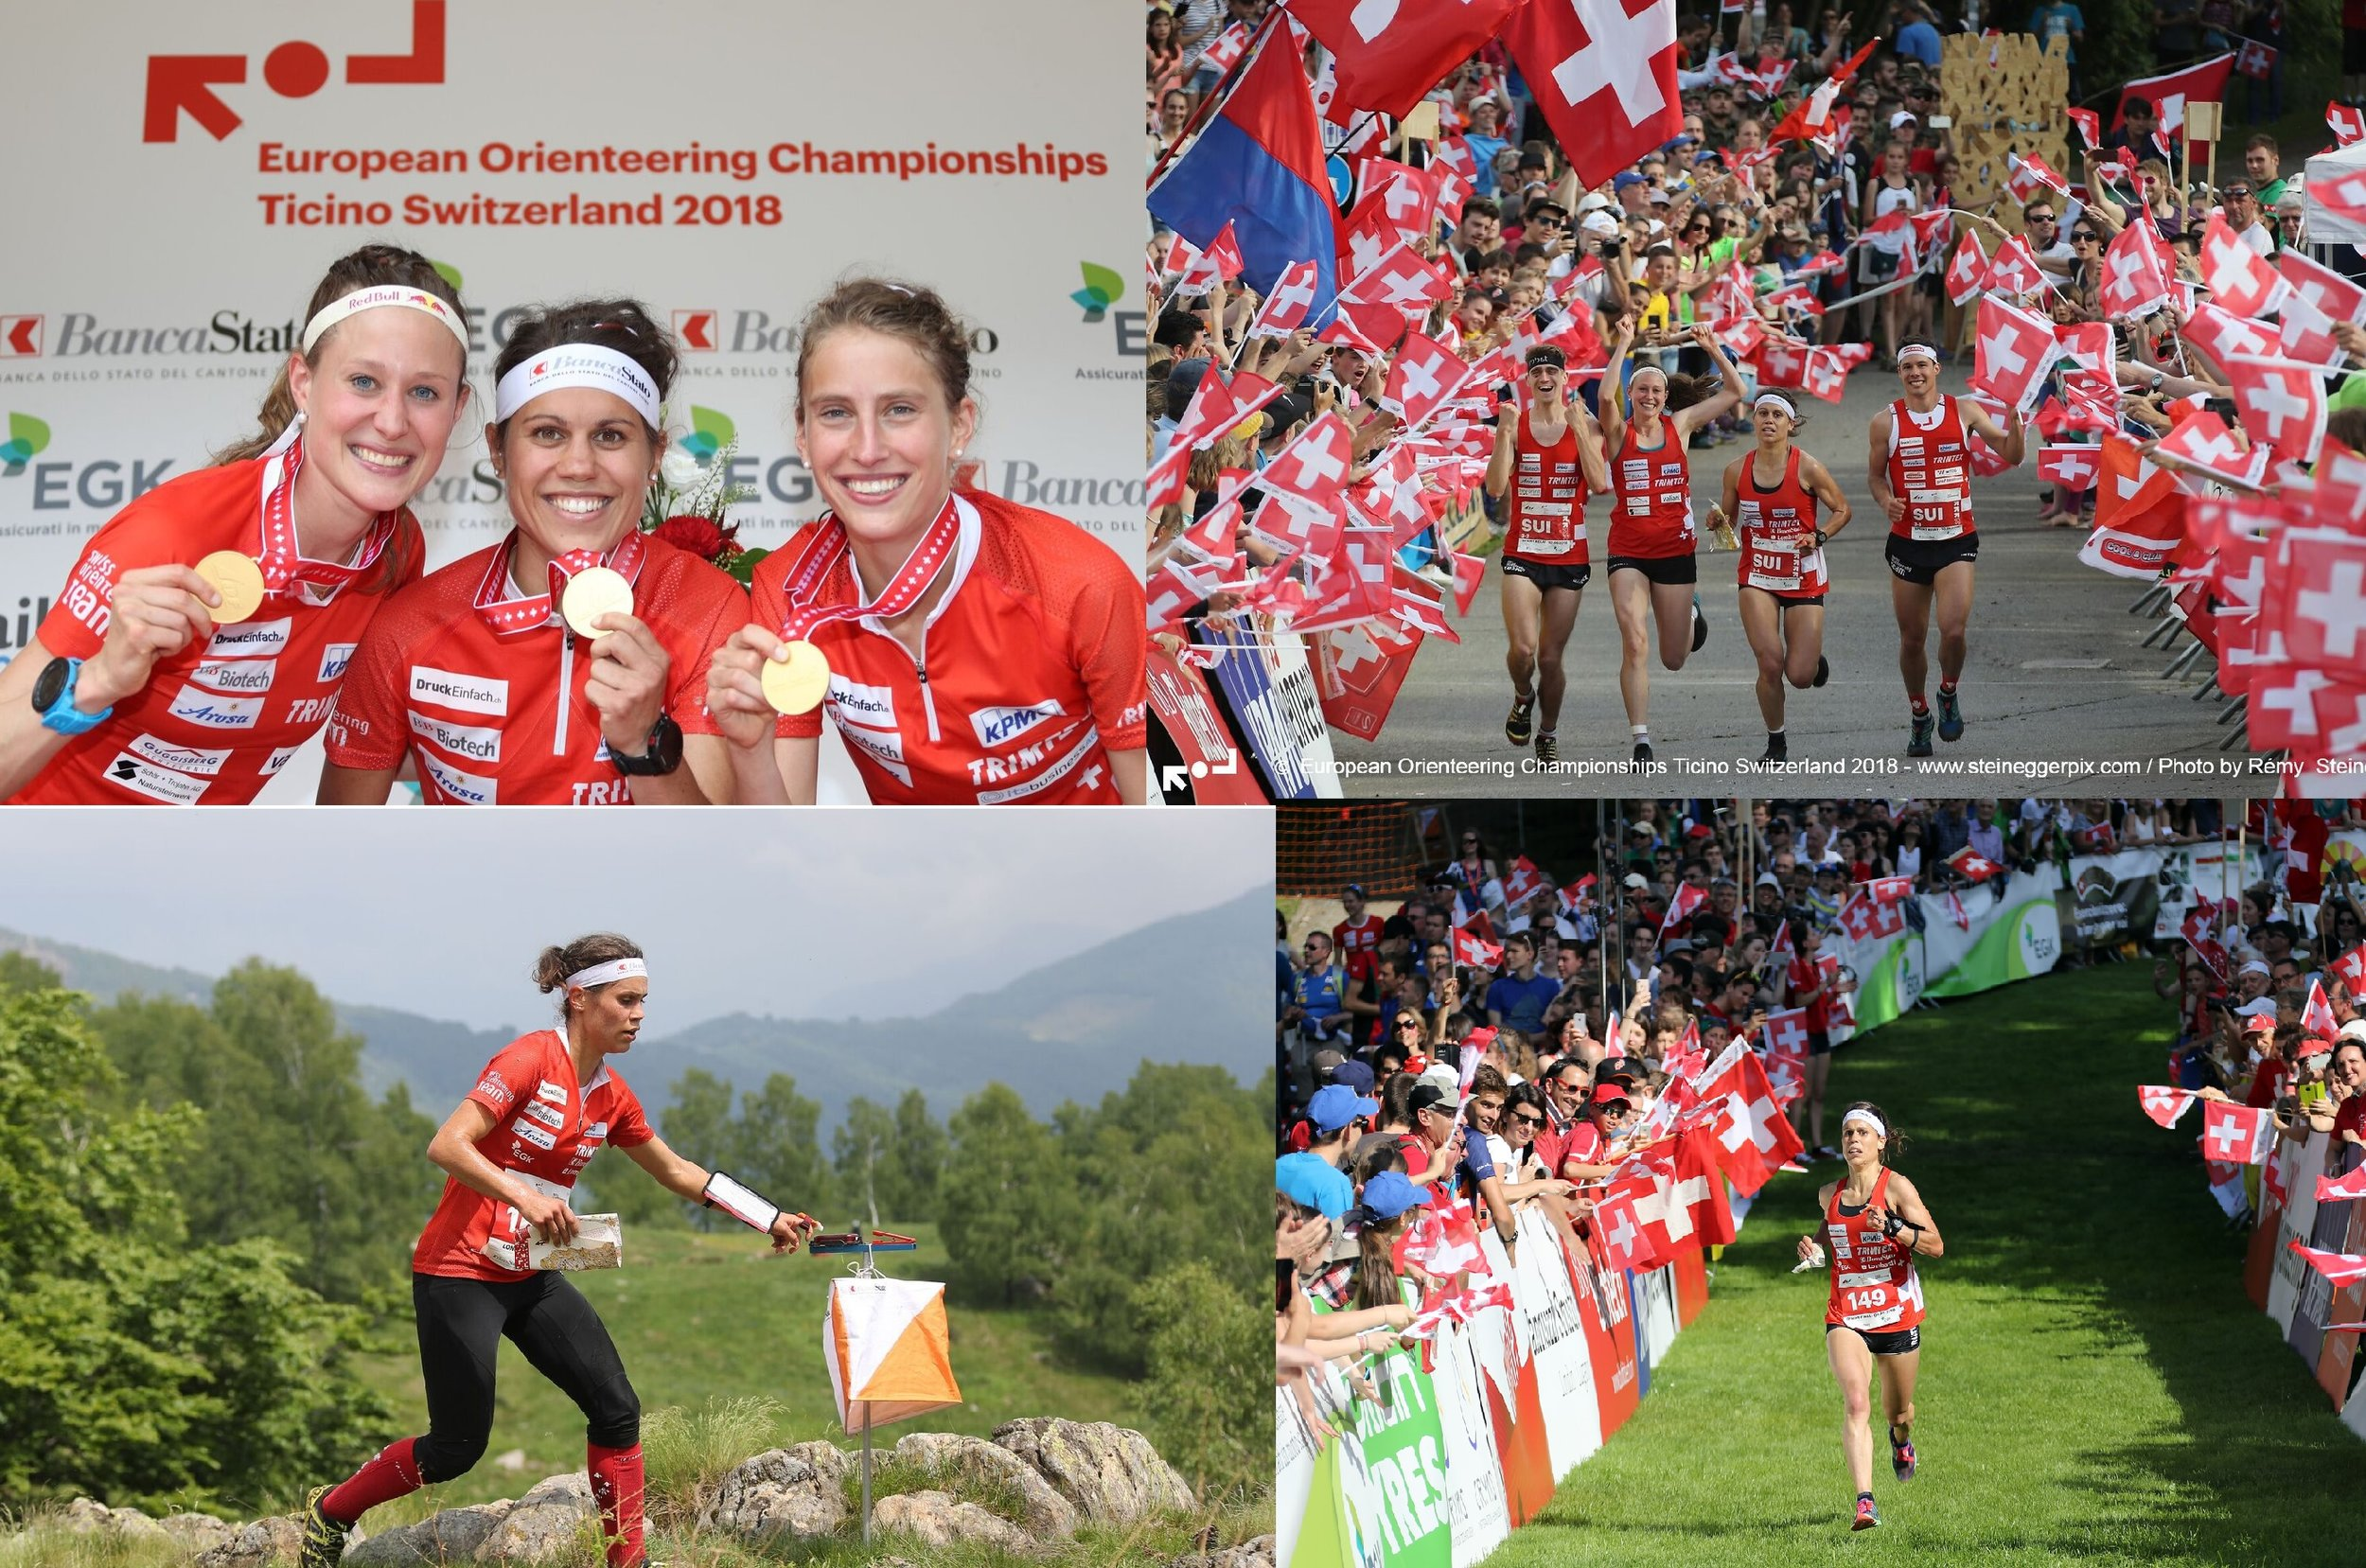 Europei assoluti di CO in Ticino:  1. Staffetta-sprint; 1. Staffetta; 6. Sprint; 10. Long